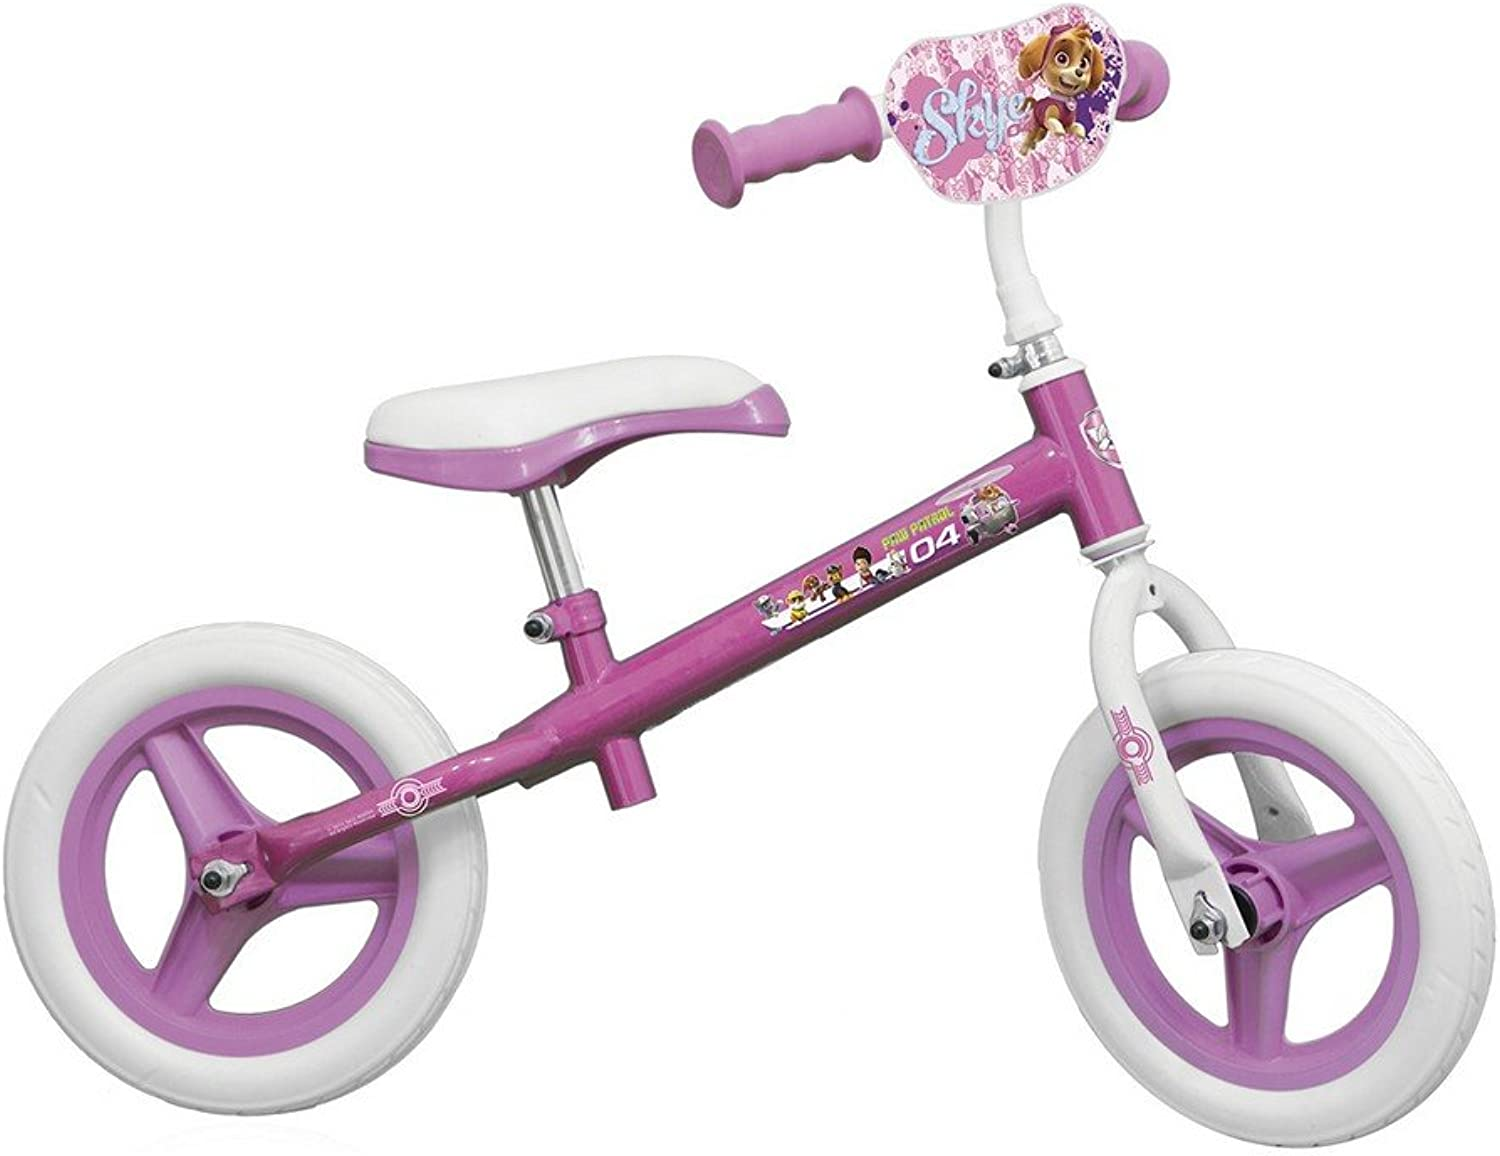 GUIZMAX Dandy horse Disney Paw Patrol 10 Inch Bike without Pedal Paw Patrol Girl